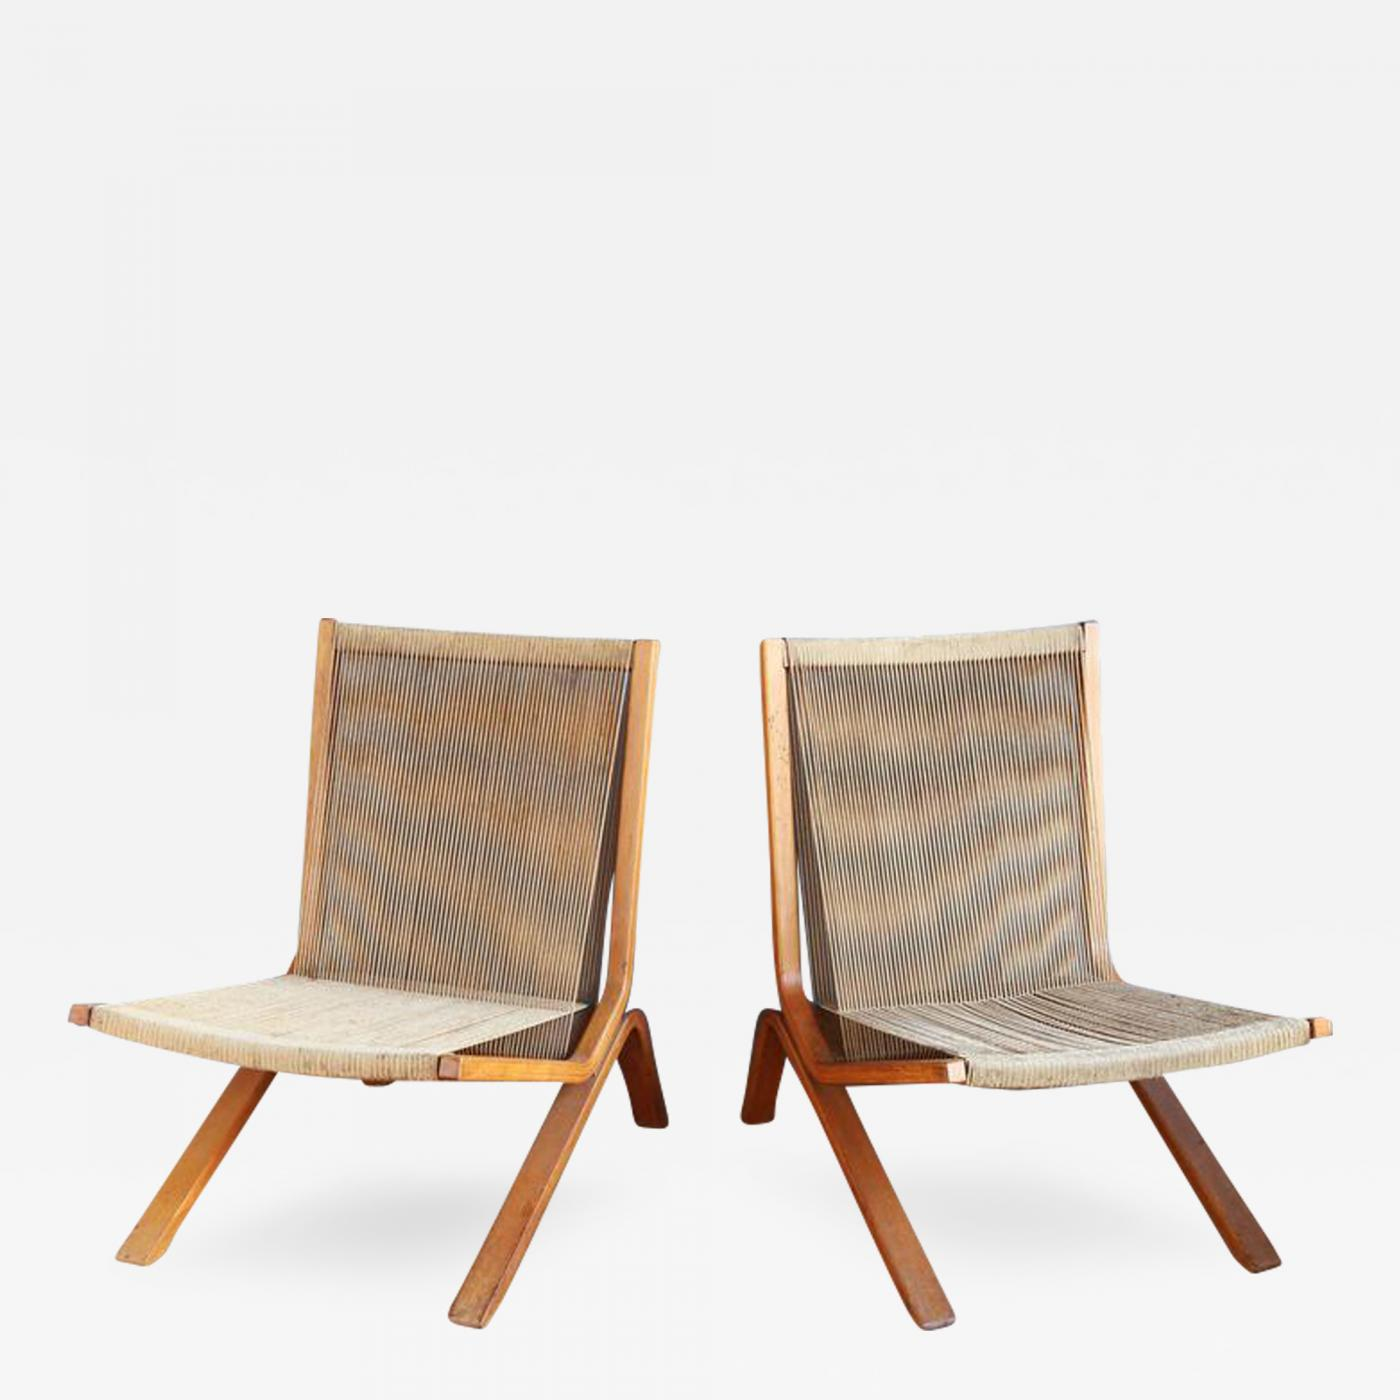 Exceptional Listings / Furniture / Seating / Lounge Chairs